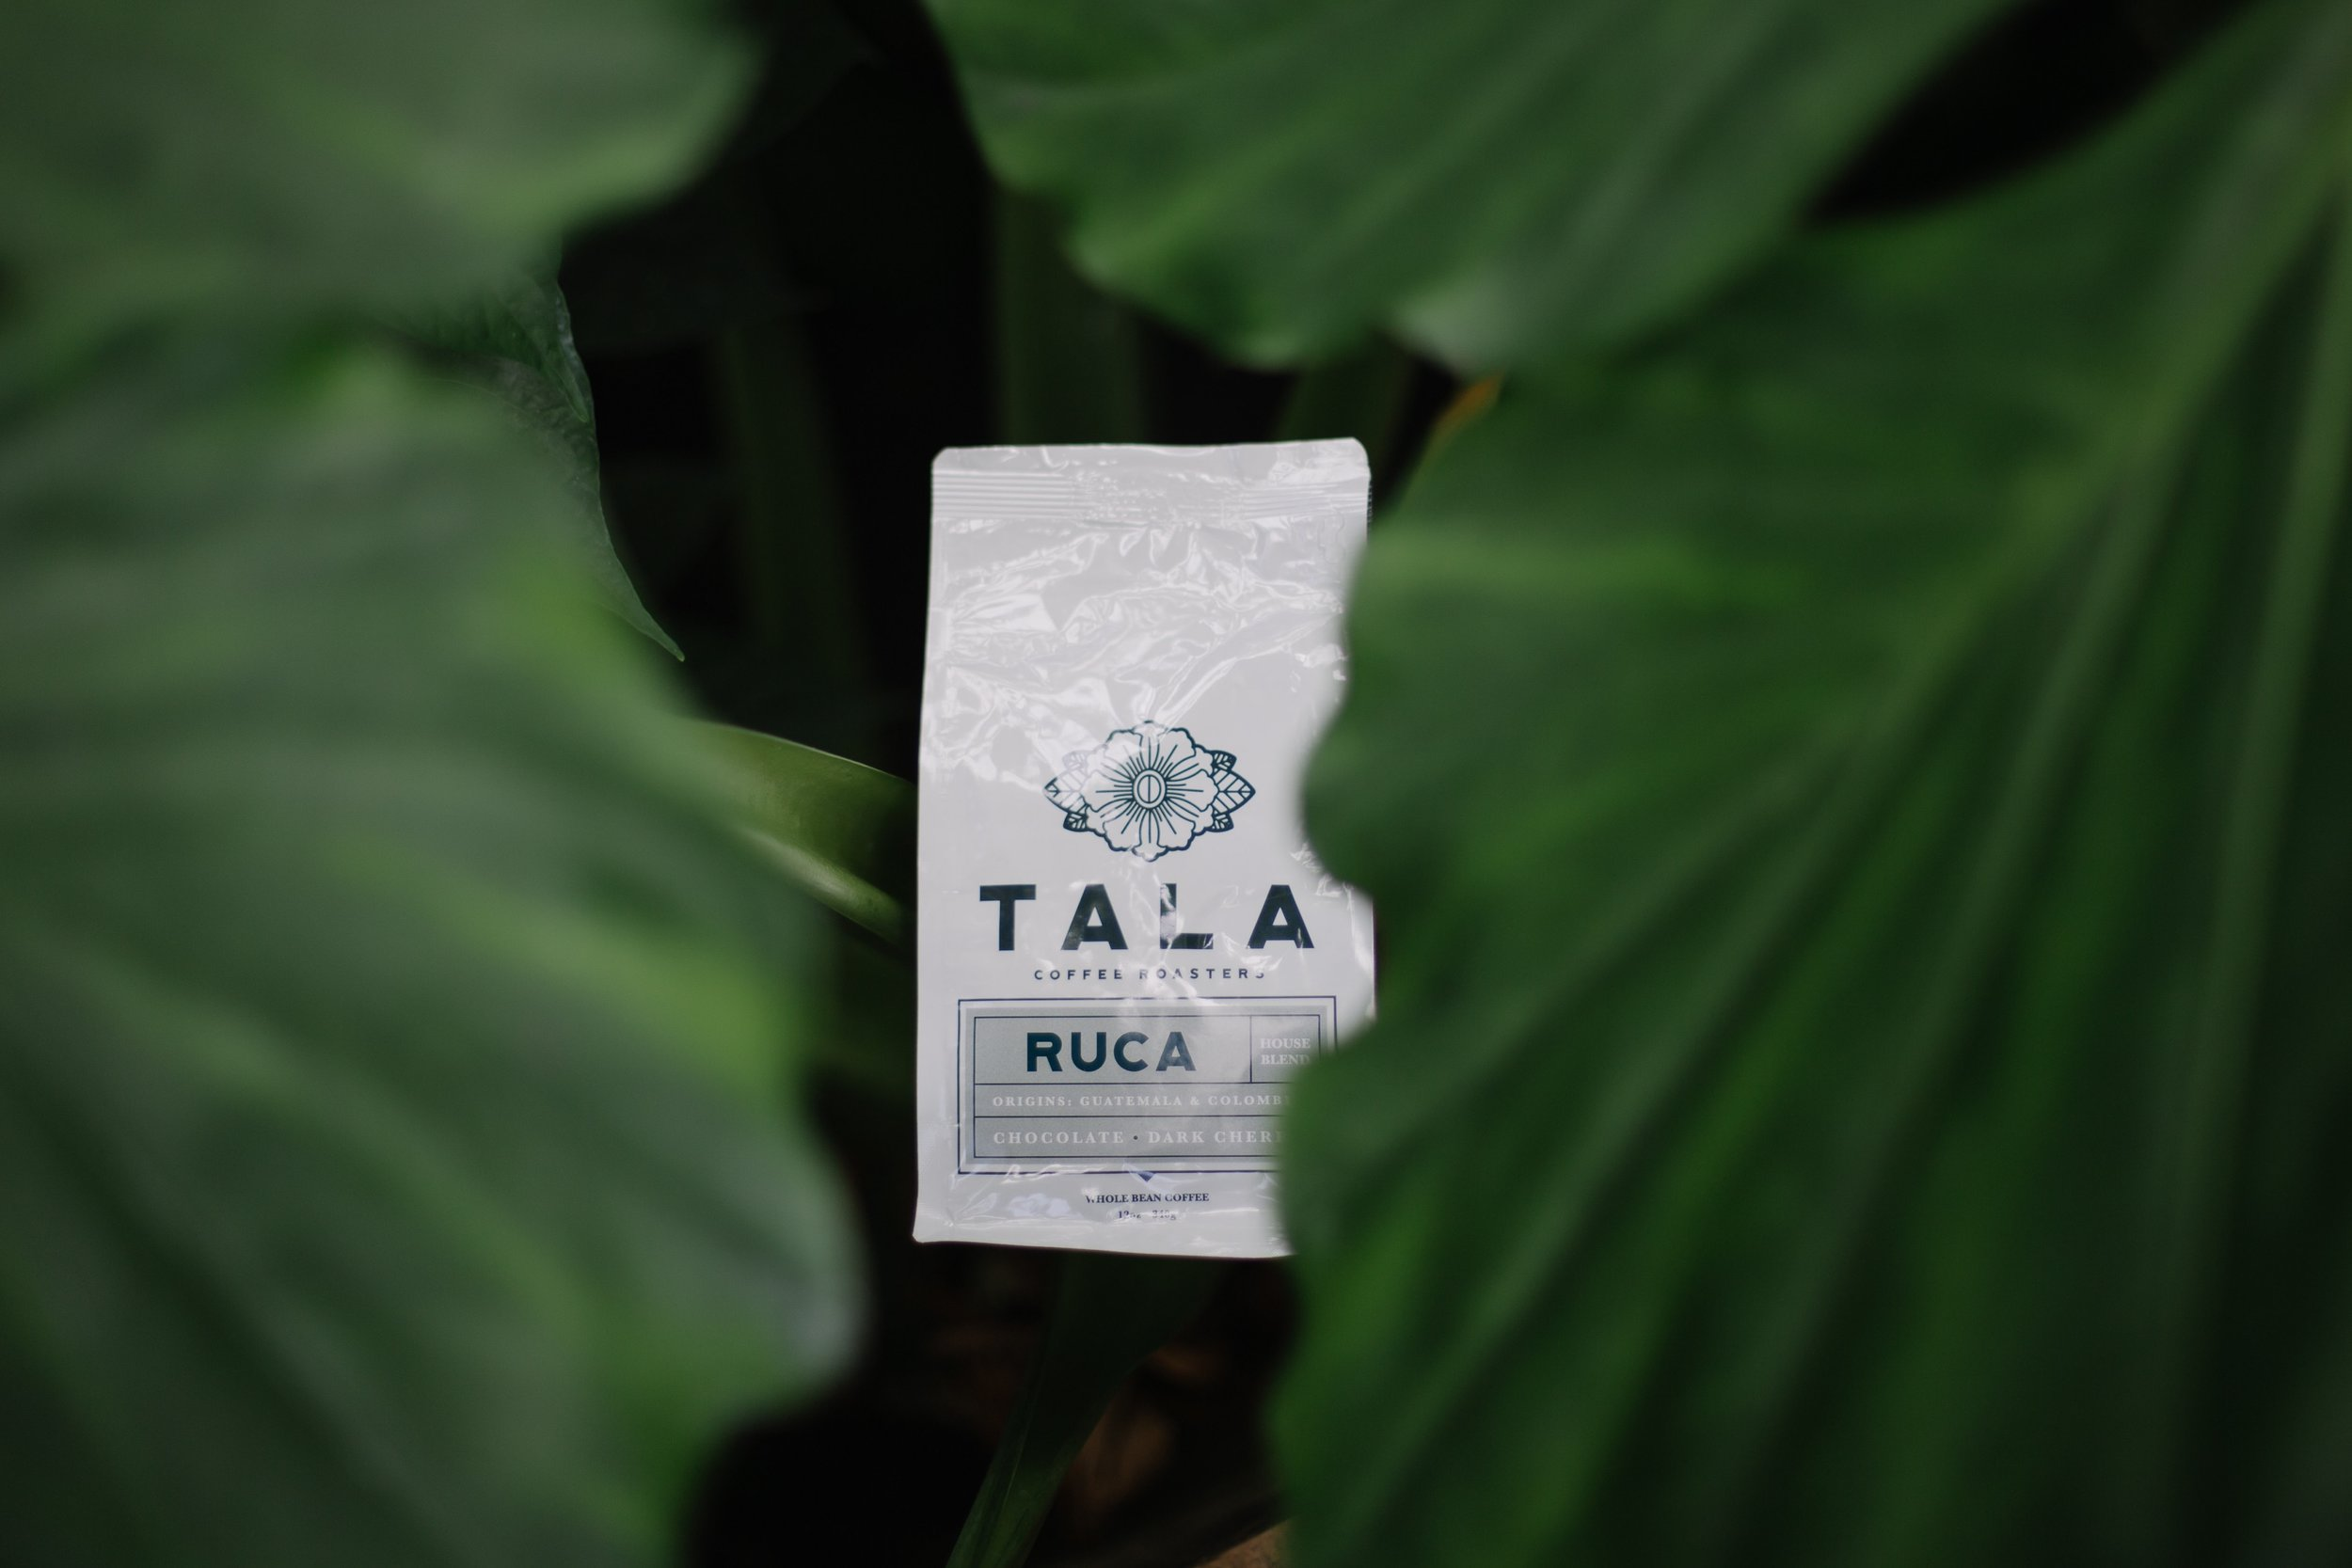 Ruca is our tried and true house blend. We love Ruca because it has a juicy sweet chocolate flavor. Complex enough to enjoy alone and goes great paired with cream, too!